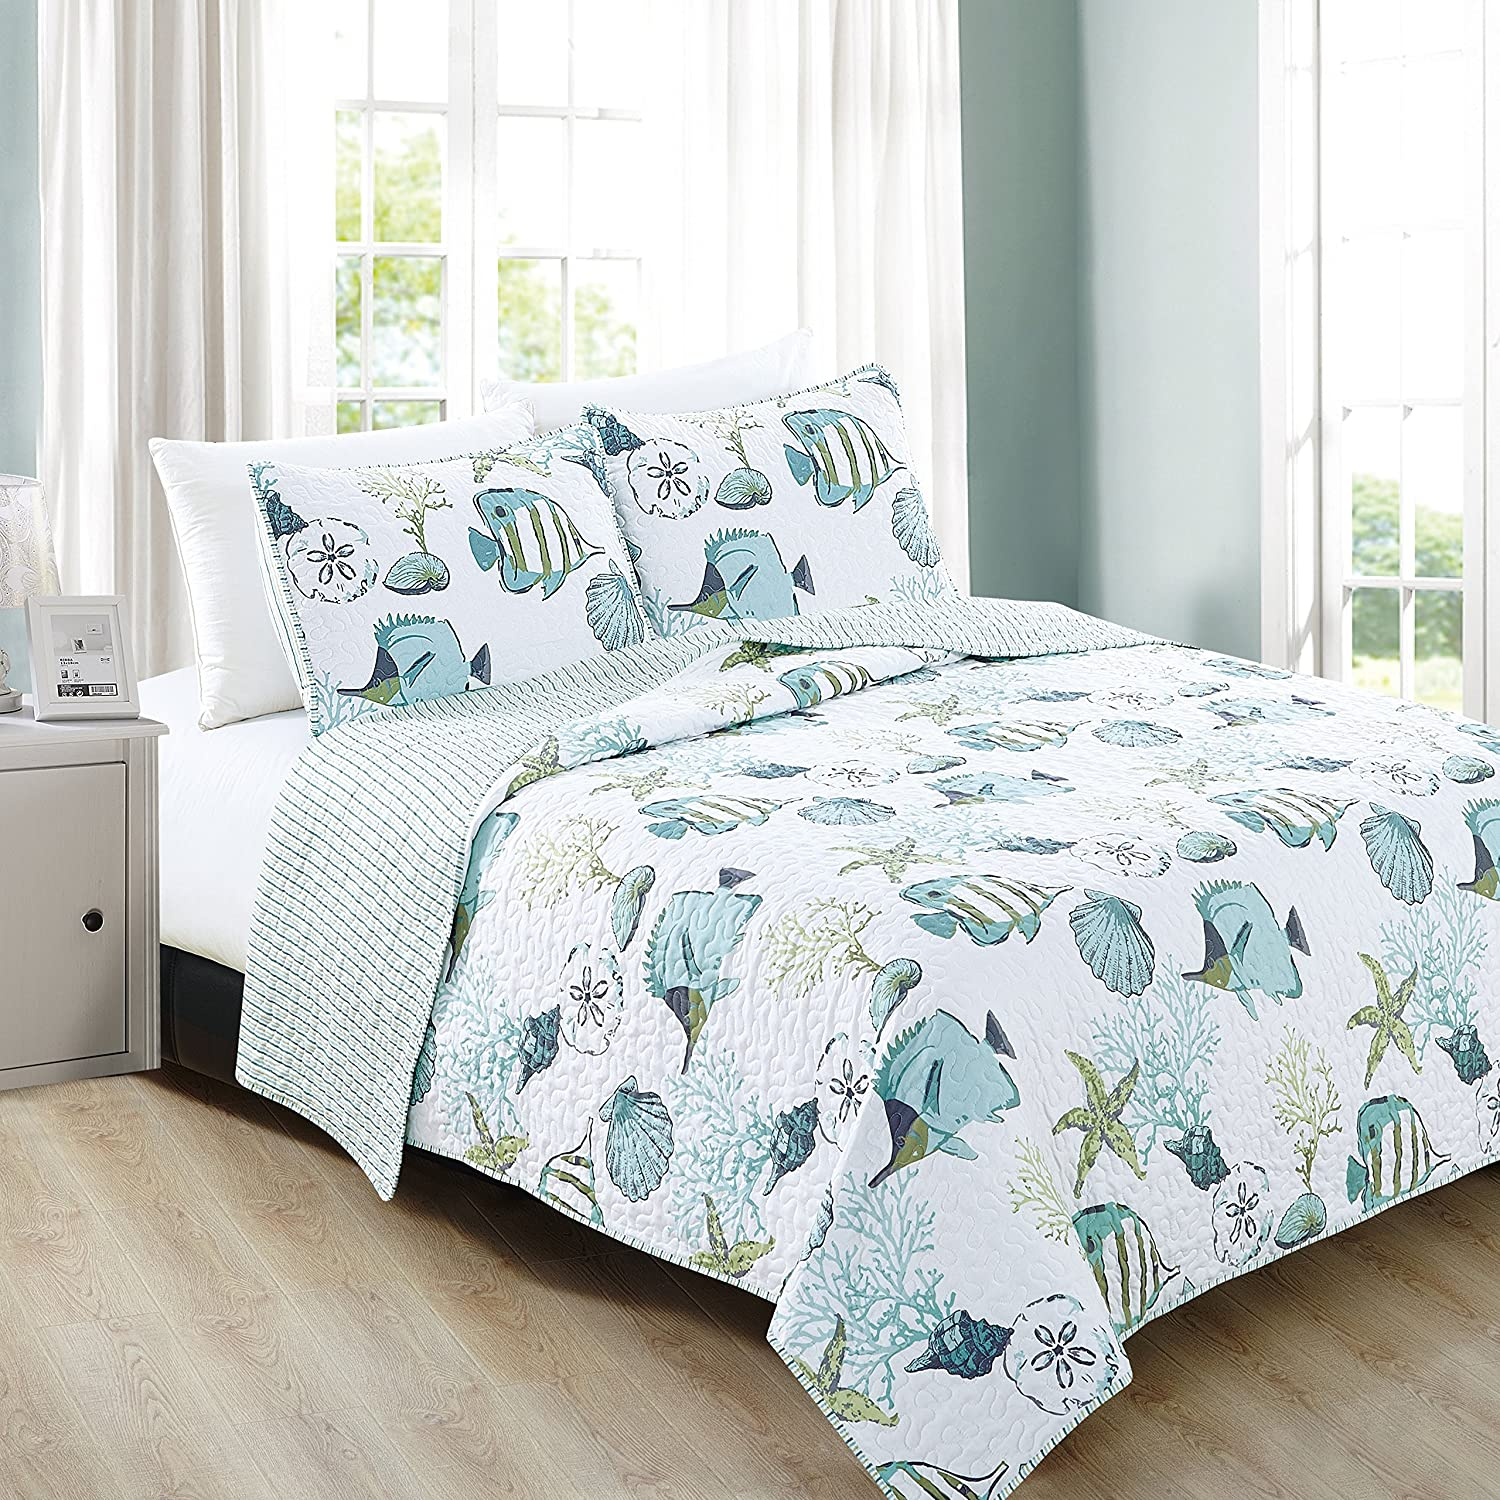 Home Fashion Designs 3-Piece Coastal Beach Theme Quilt Set with Shams. Soft All-Season Luxury Microfiber Reversible Bedspread and Coverlet. Seaside Collection Brand. (Full/Queen, Multi)